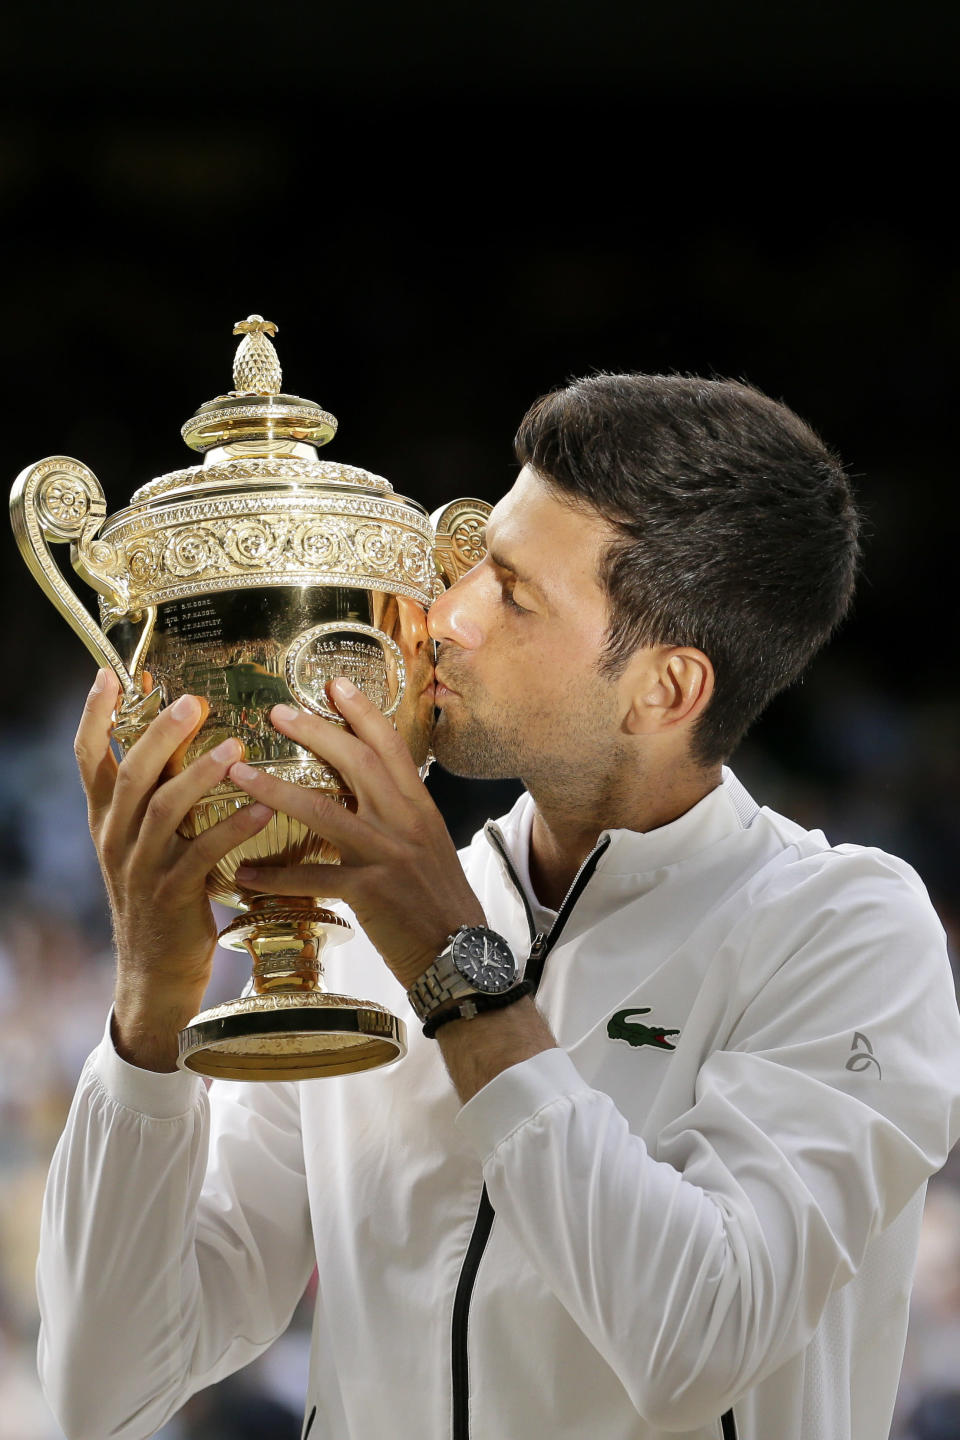 FILE - In this July 14, 2019, file photo, Serbia's Novak Djokovic kisses the trophy after defeating Switzerland's Roger Federer in the men's singles final match of the Wimbledon Tennis Championships in London. Federer leads the list with 20 Grand Slam singles titles. Rafael Nadal has 19. Djokovic has 16. (AP Photo/Tim Ireland, File)